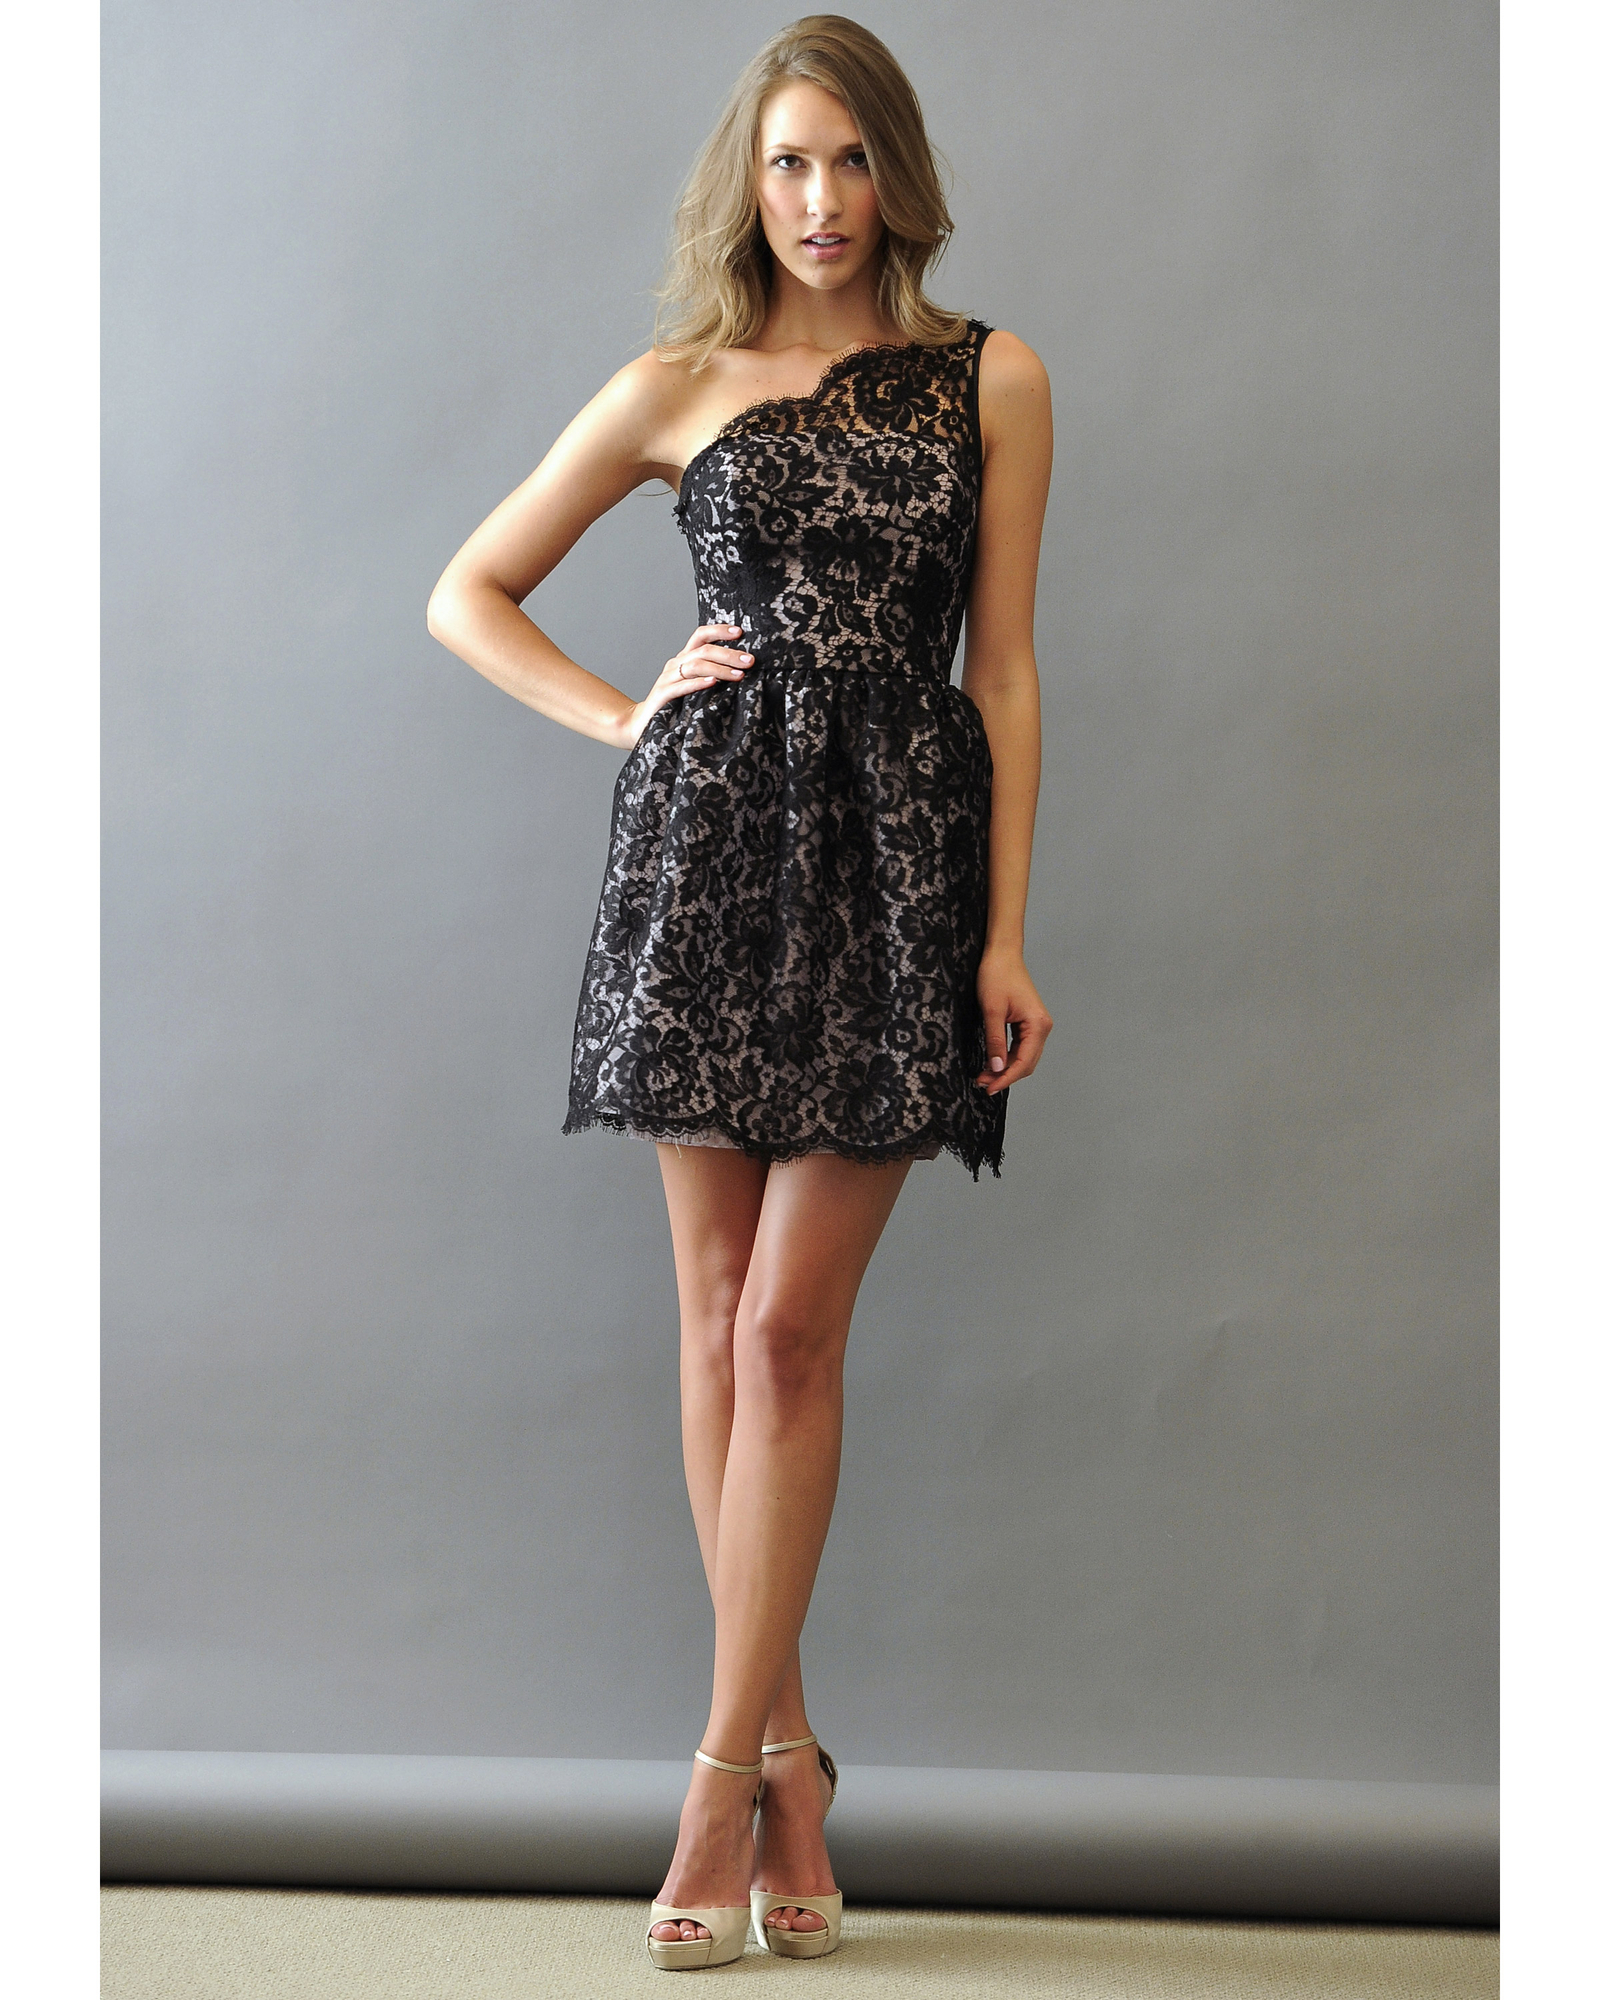 Short Lace Bridesmaid Dress in Black